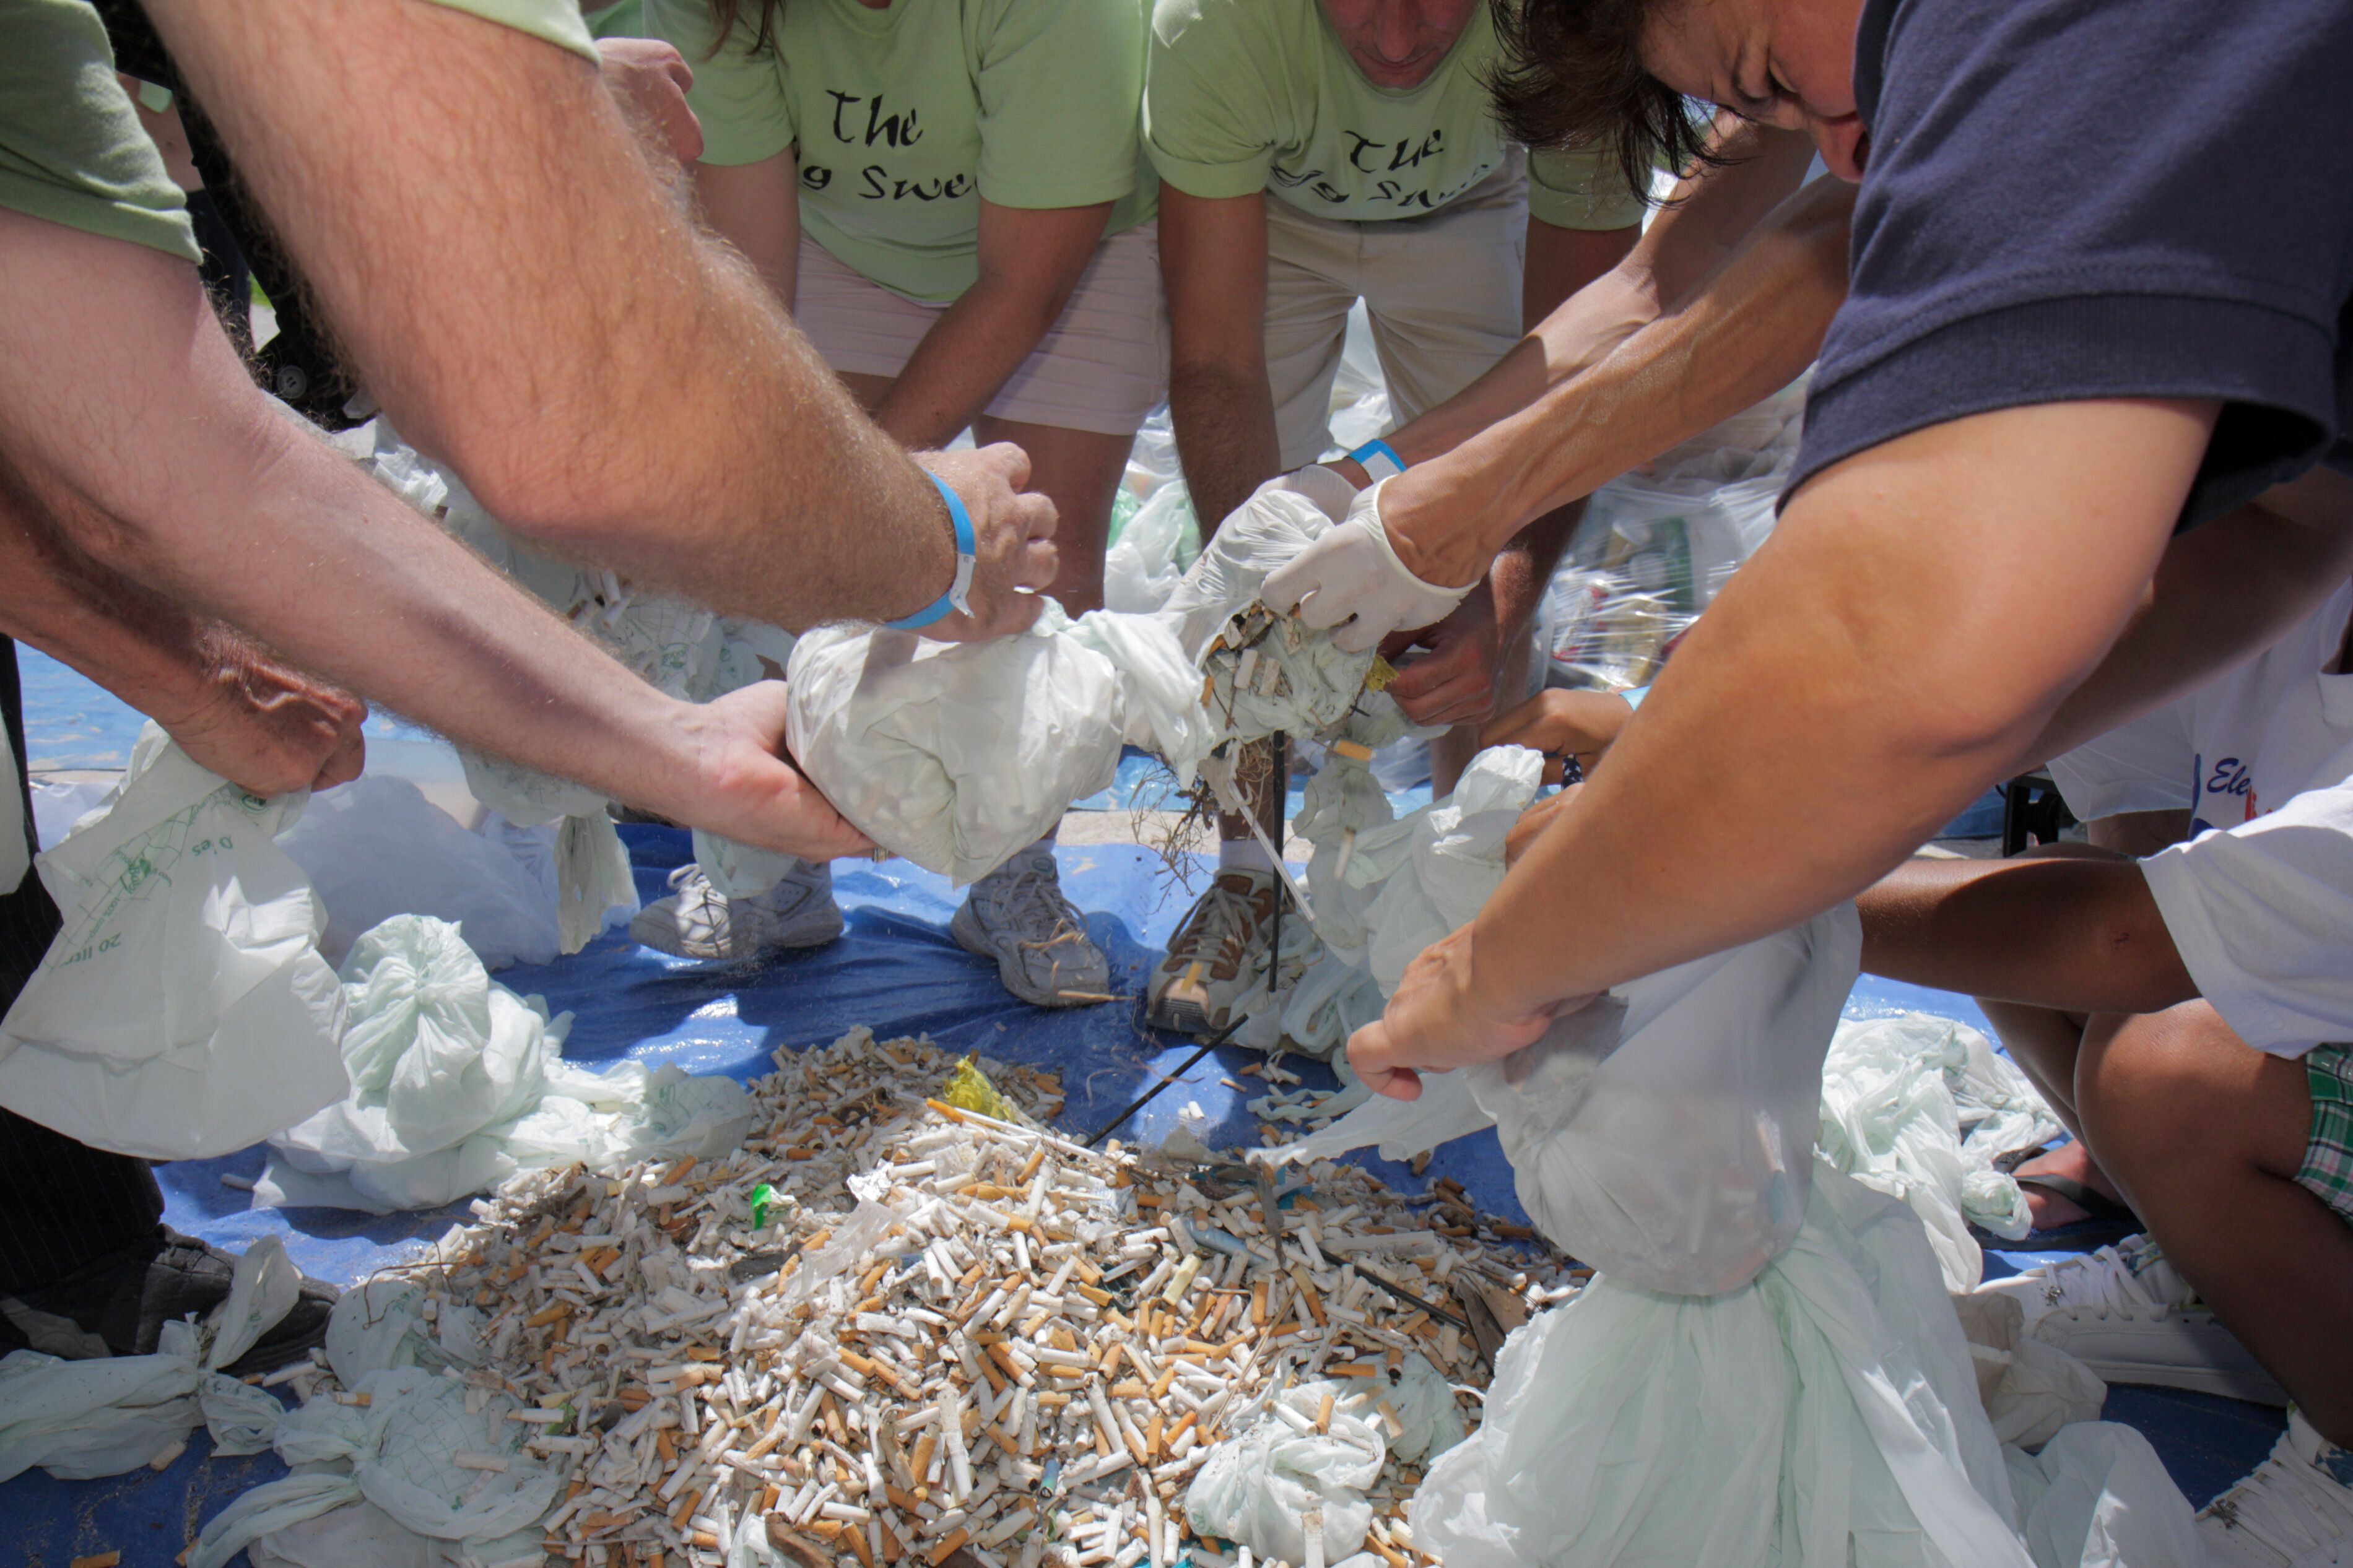 Volunteers fill bags with cigarette butts found on Miami Beach at the ECOMB Big Sweep Plastic a decade ago.